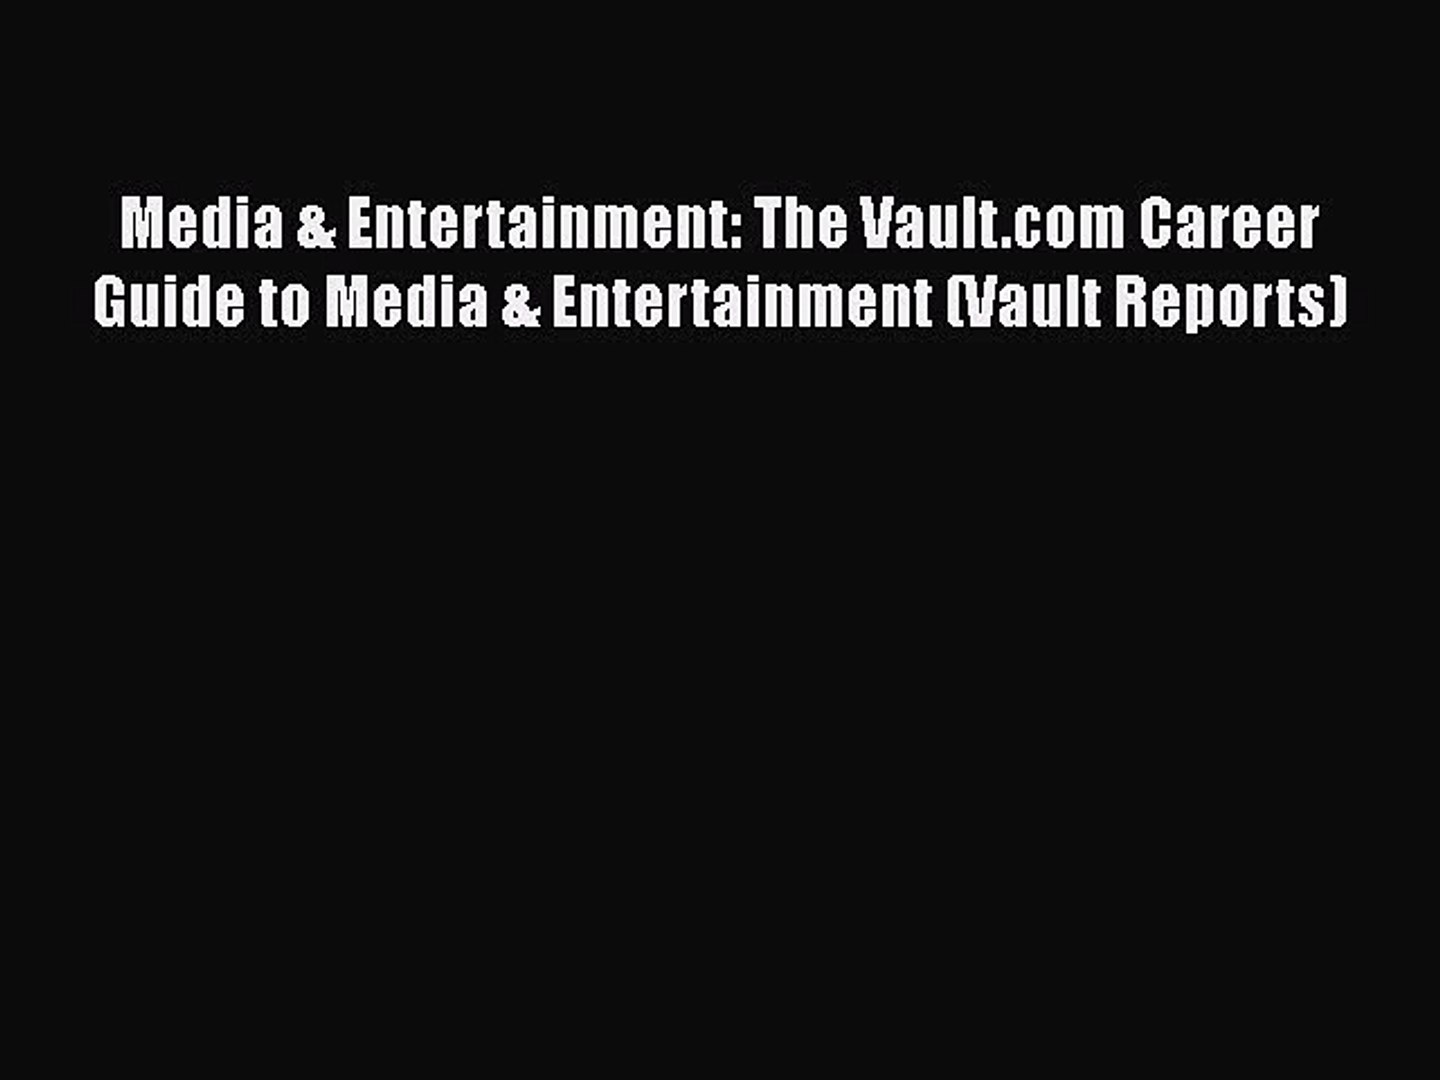 Download Media & Entertainment: The Vault.com Career Guide to Media & Entertainment (Vault